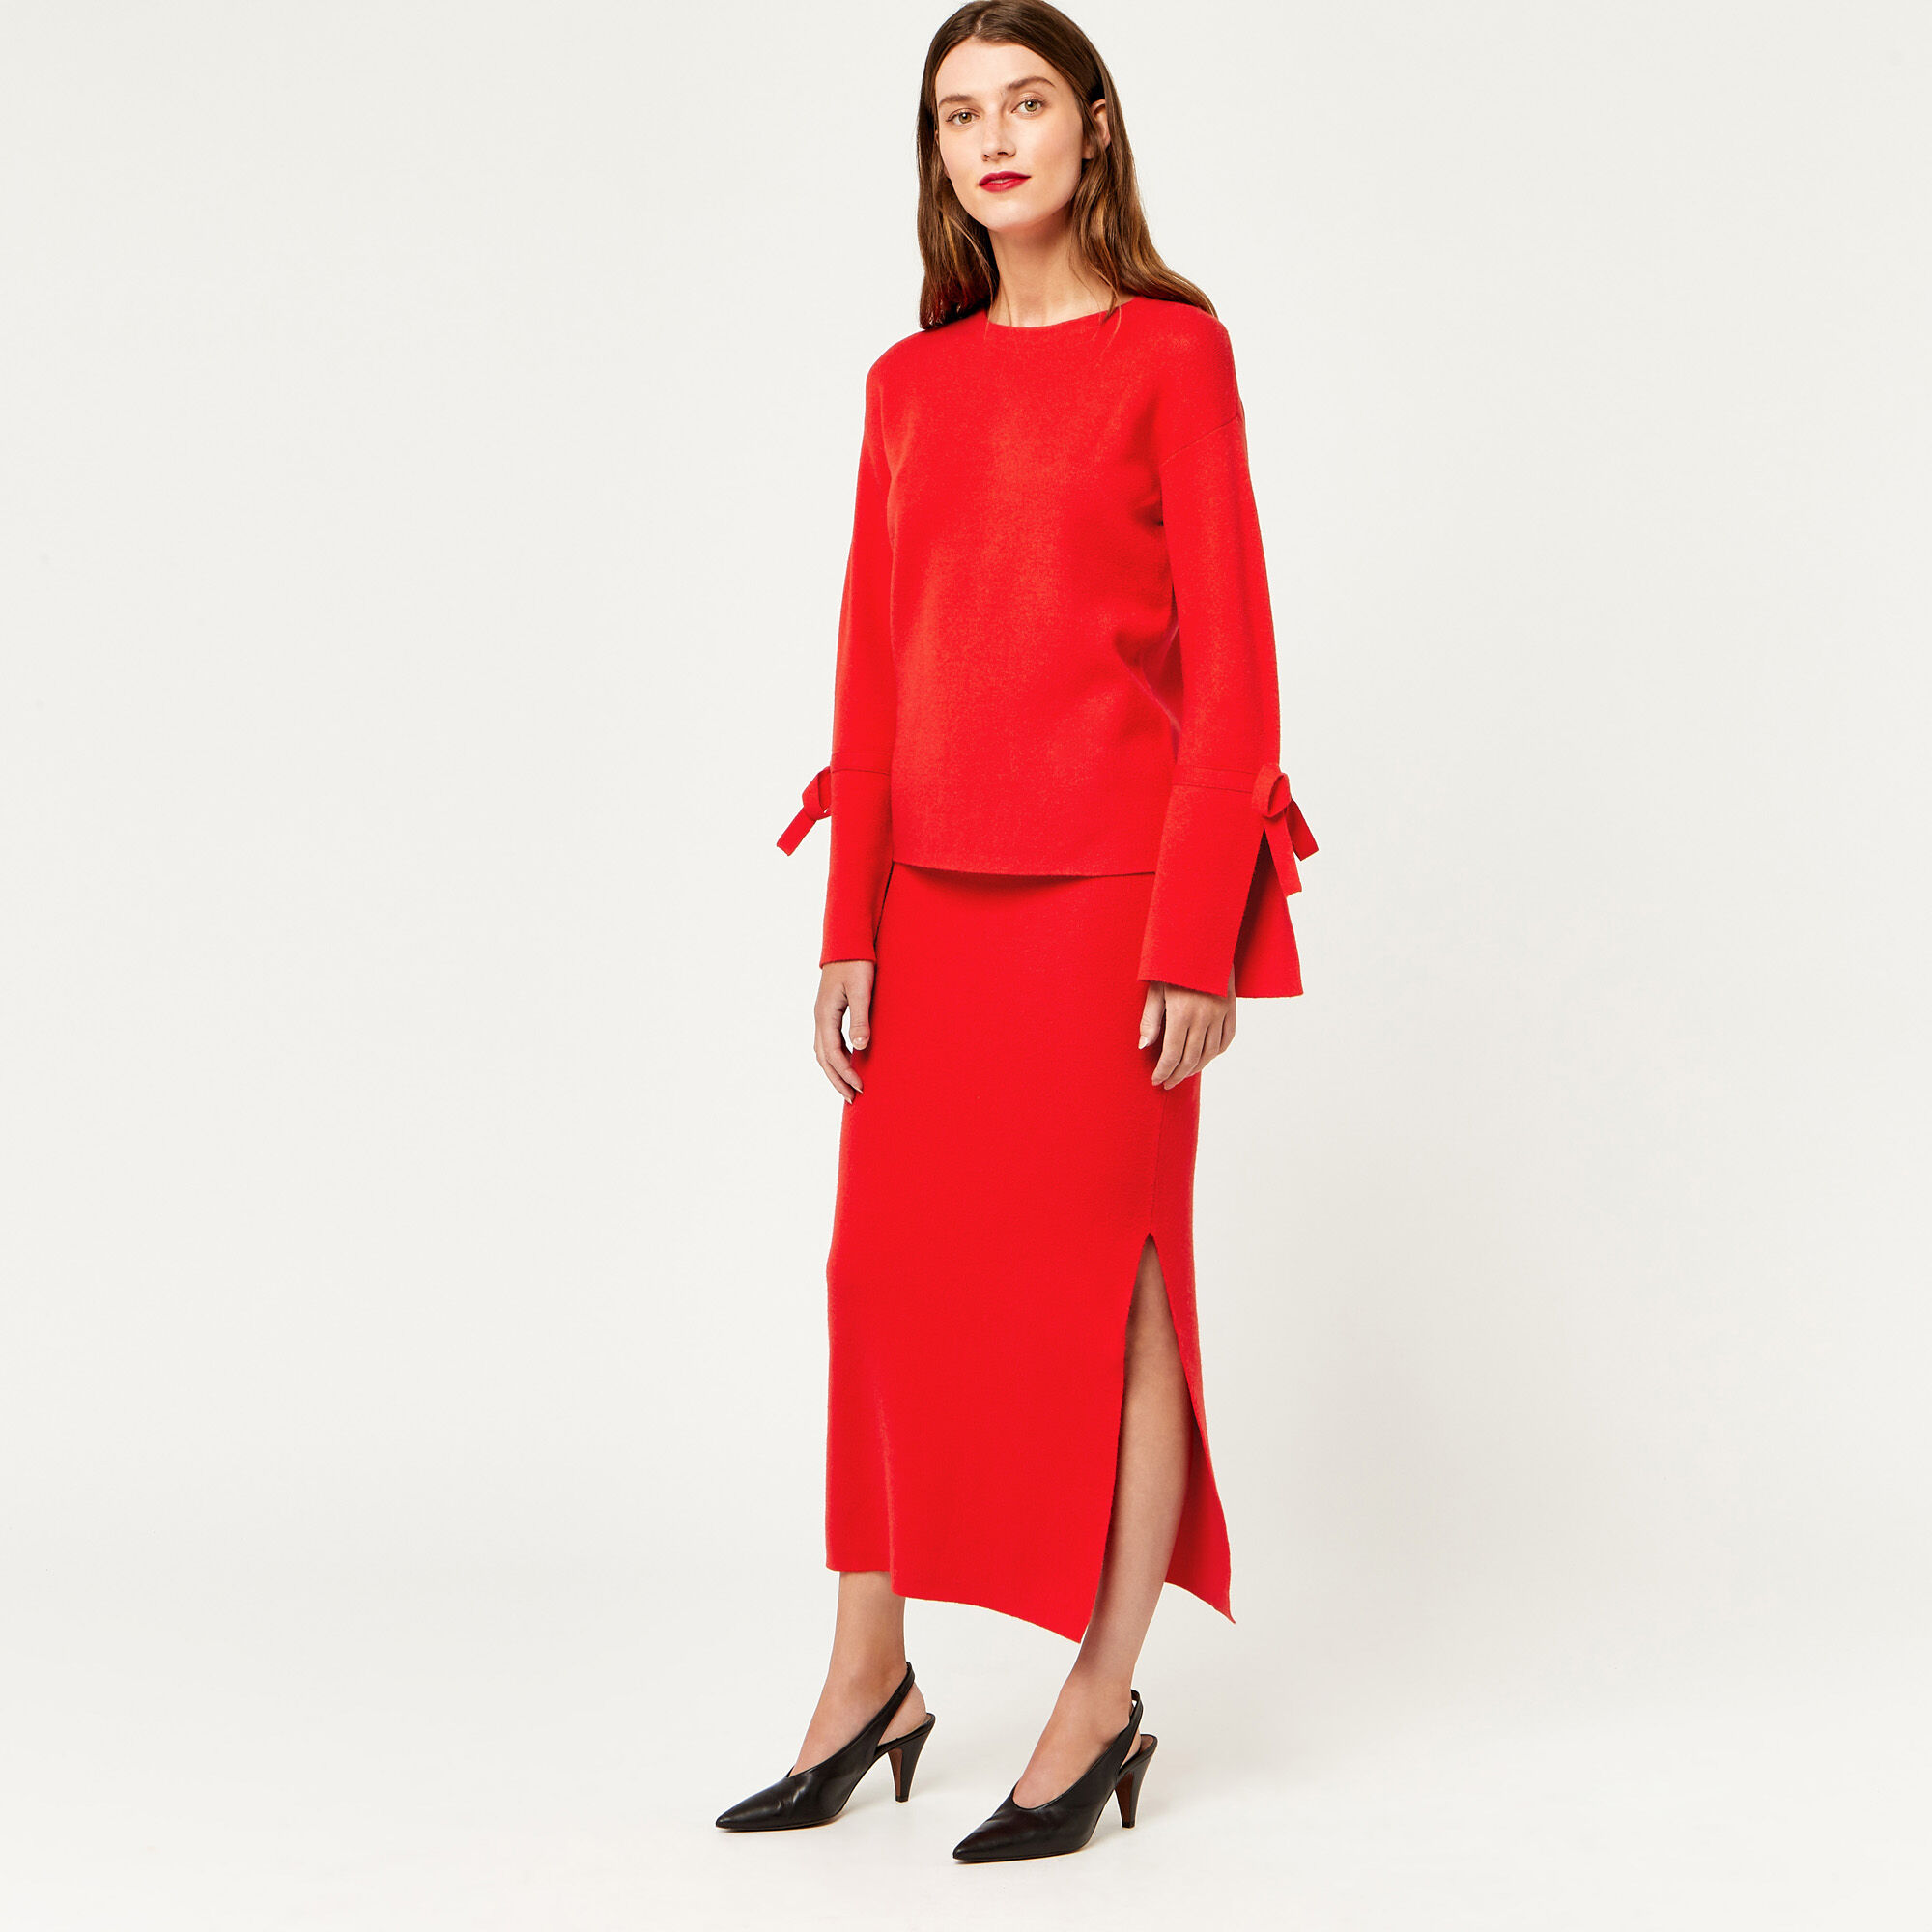 Warehouse, MILANO KNITTED SKIRT Bright Red 1